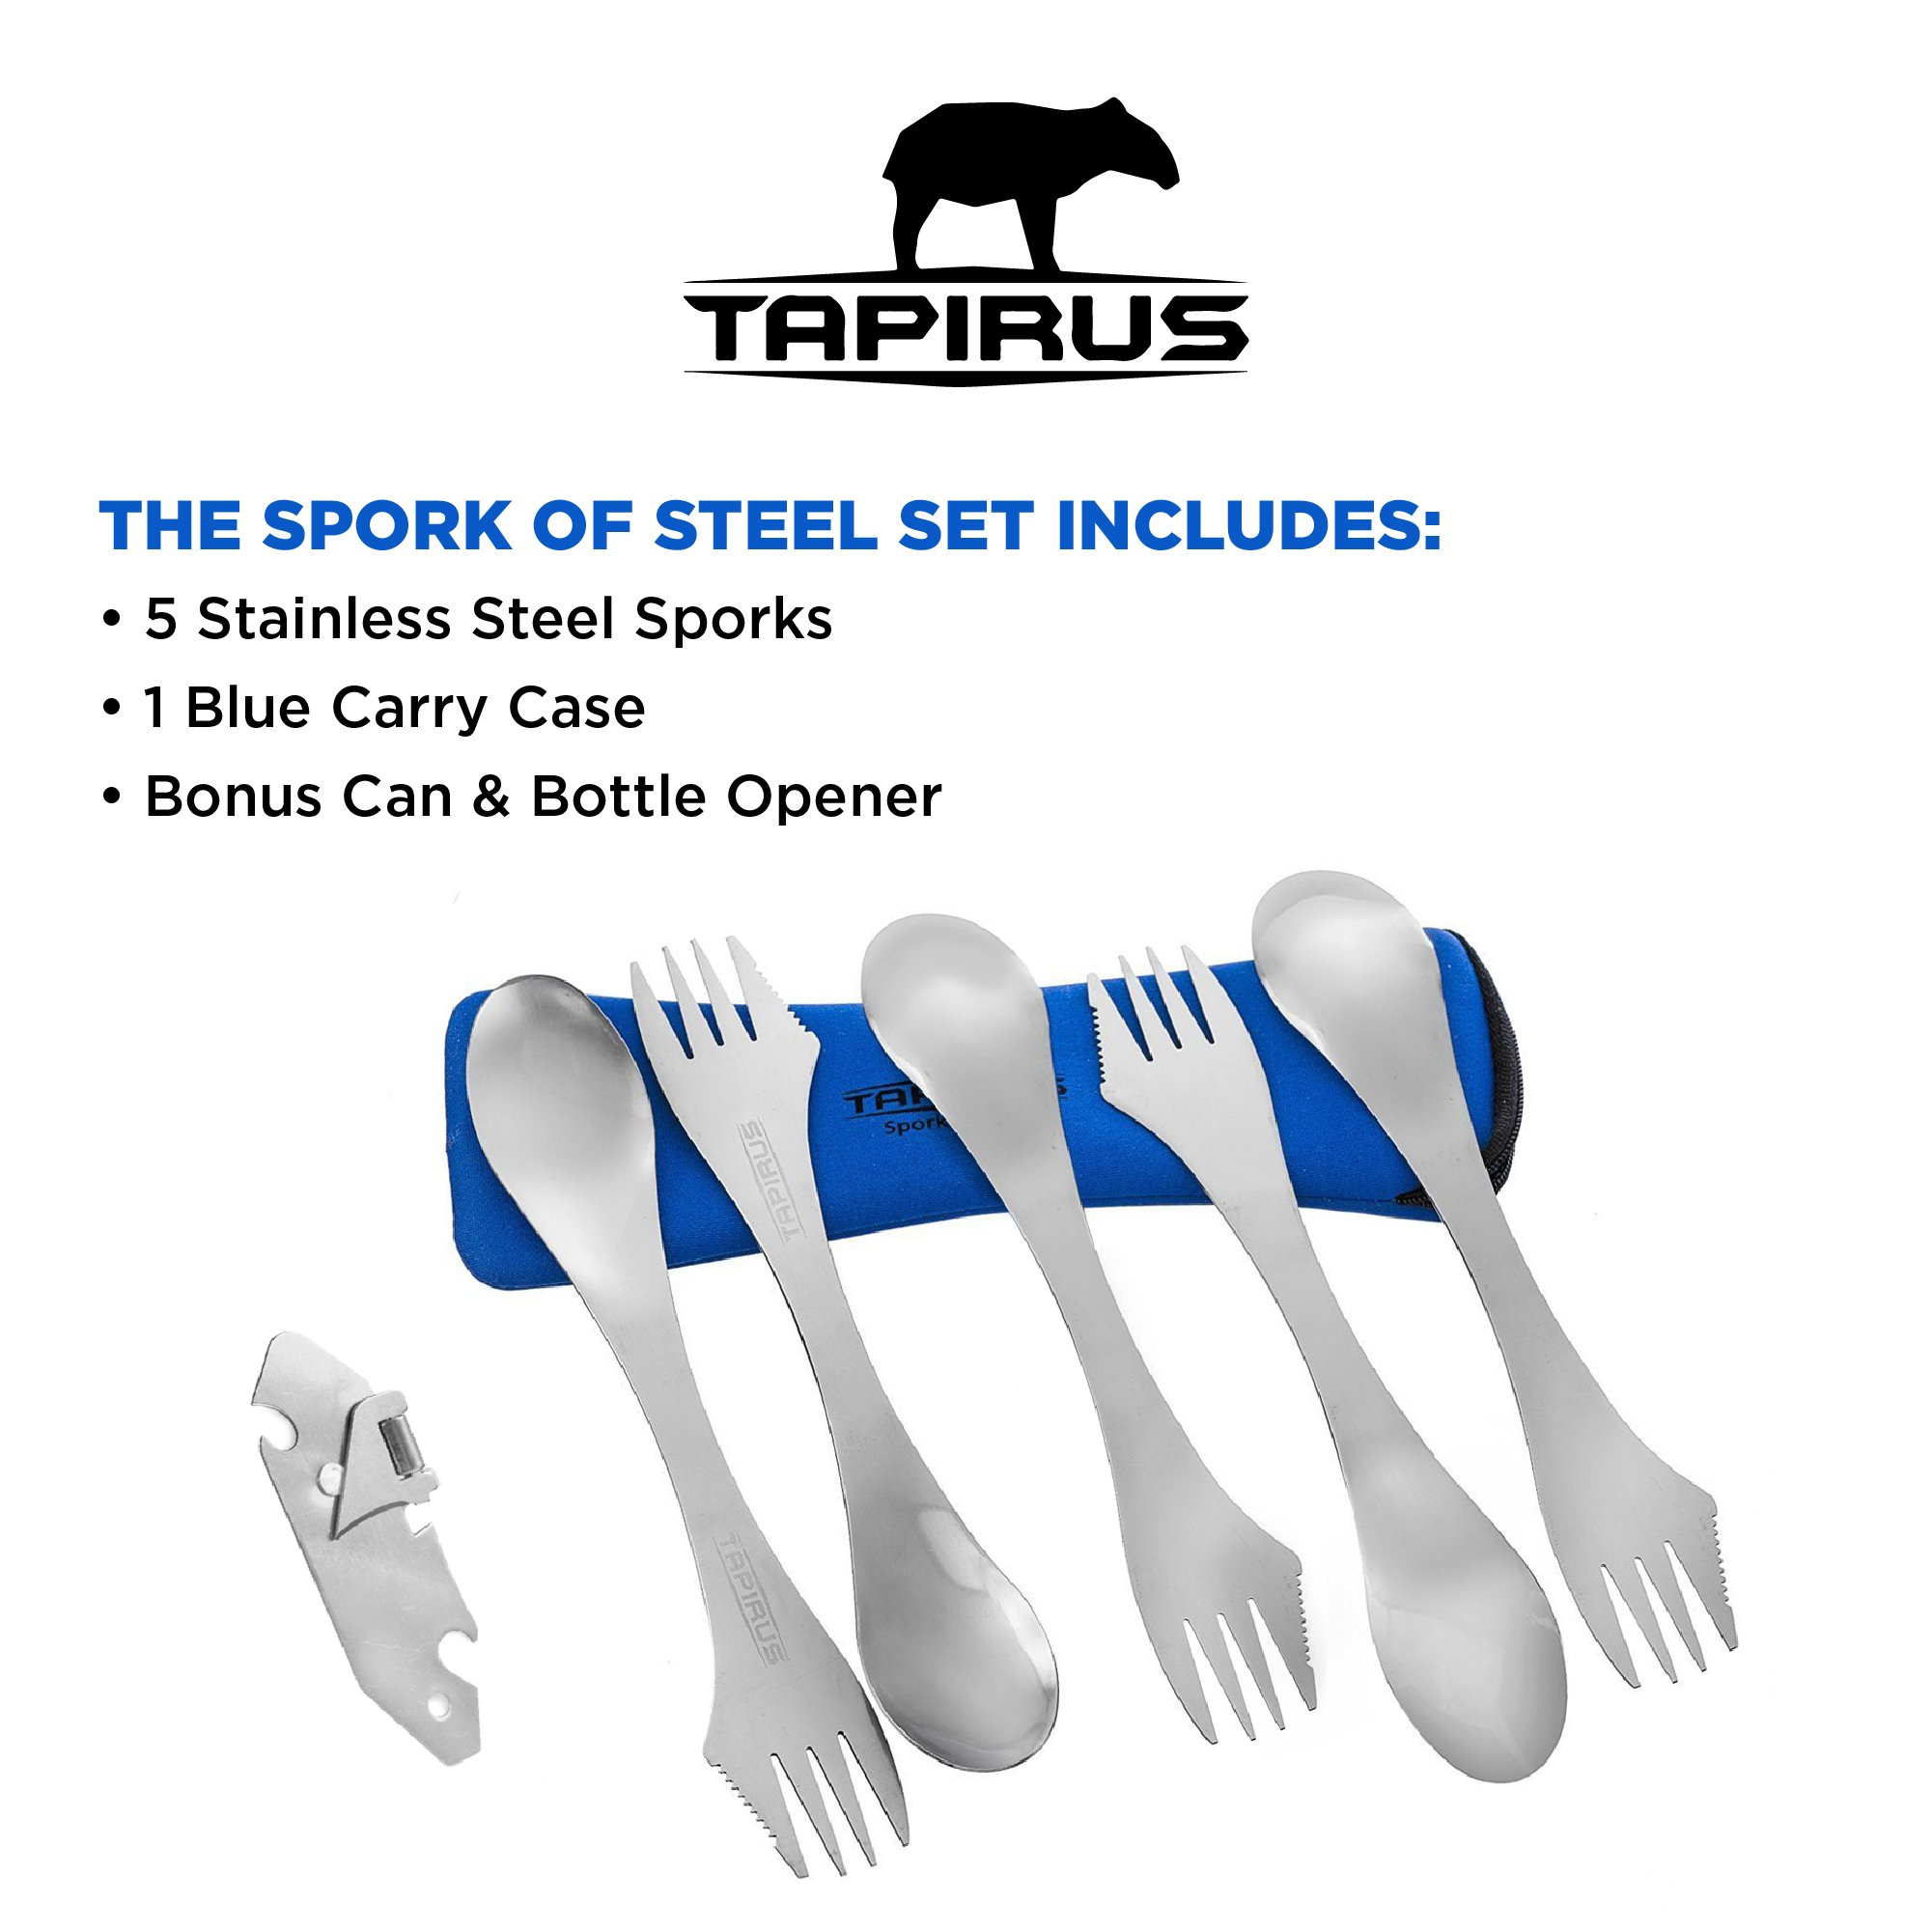 Tapirus 5 Spork Of Steel Utensils Set | Durable & Rust Proof Stainless Steel | Spoon, Fork & Knife Flatware | For Camping, Fishing, Hunting & Outdoor Activities | With Bottle Opener & Carrying Case by Tapirus (Image #5)